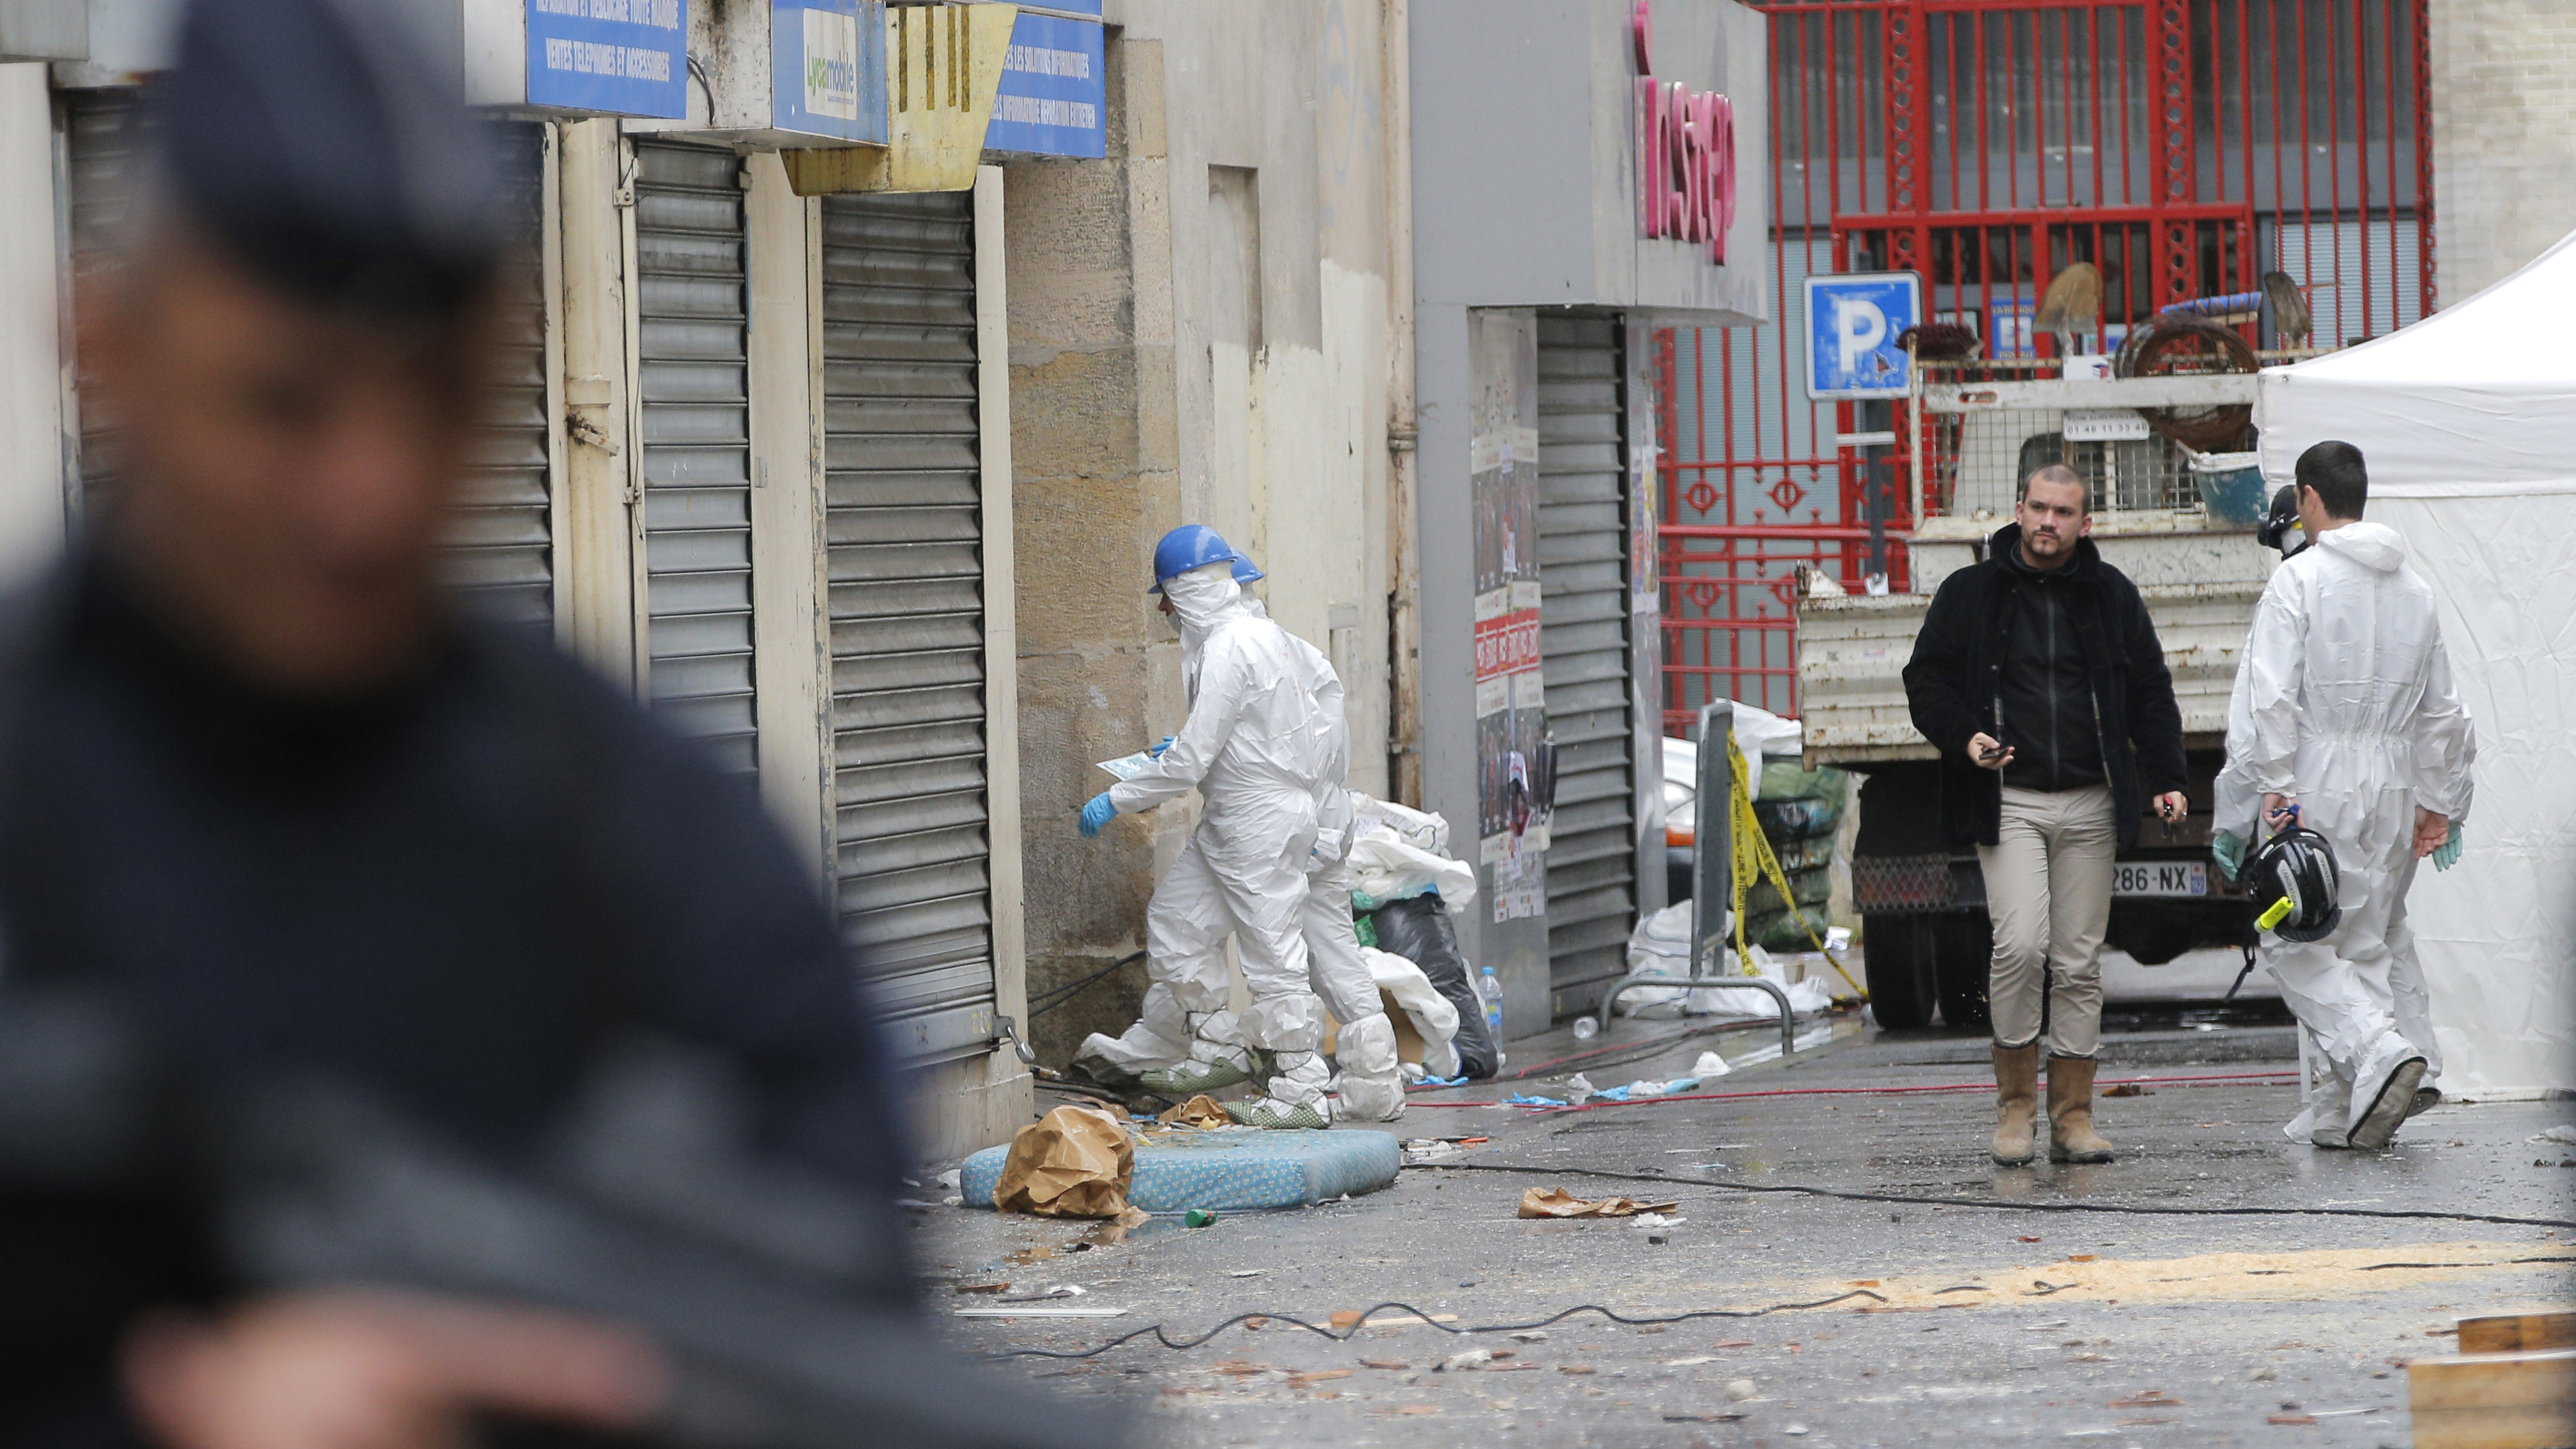 Investigating police officers enter the building of Wednesday's raid on an apartment in Paris suburb Saint-Denis, Thursday Nov.19, 2015.